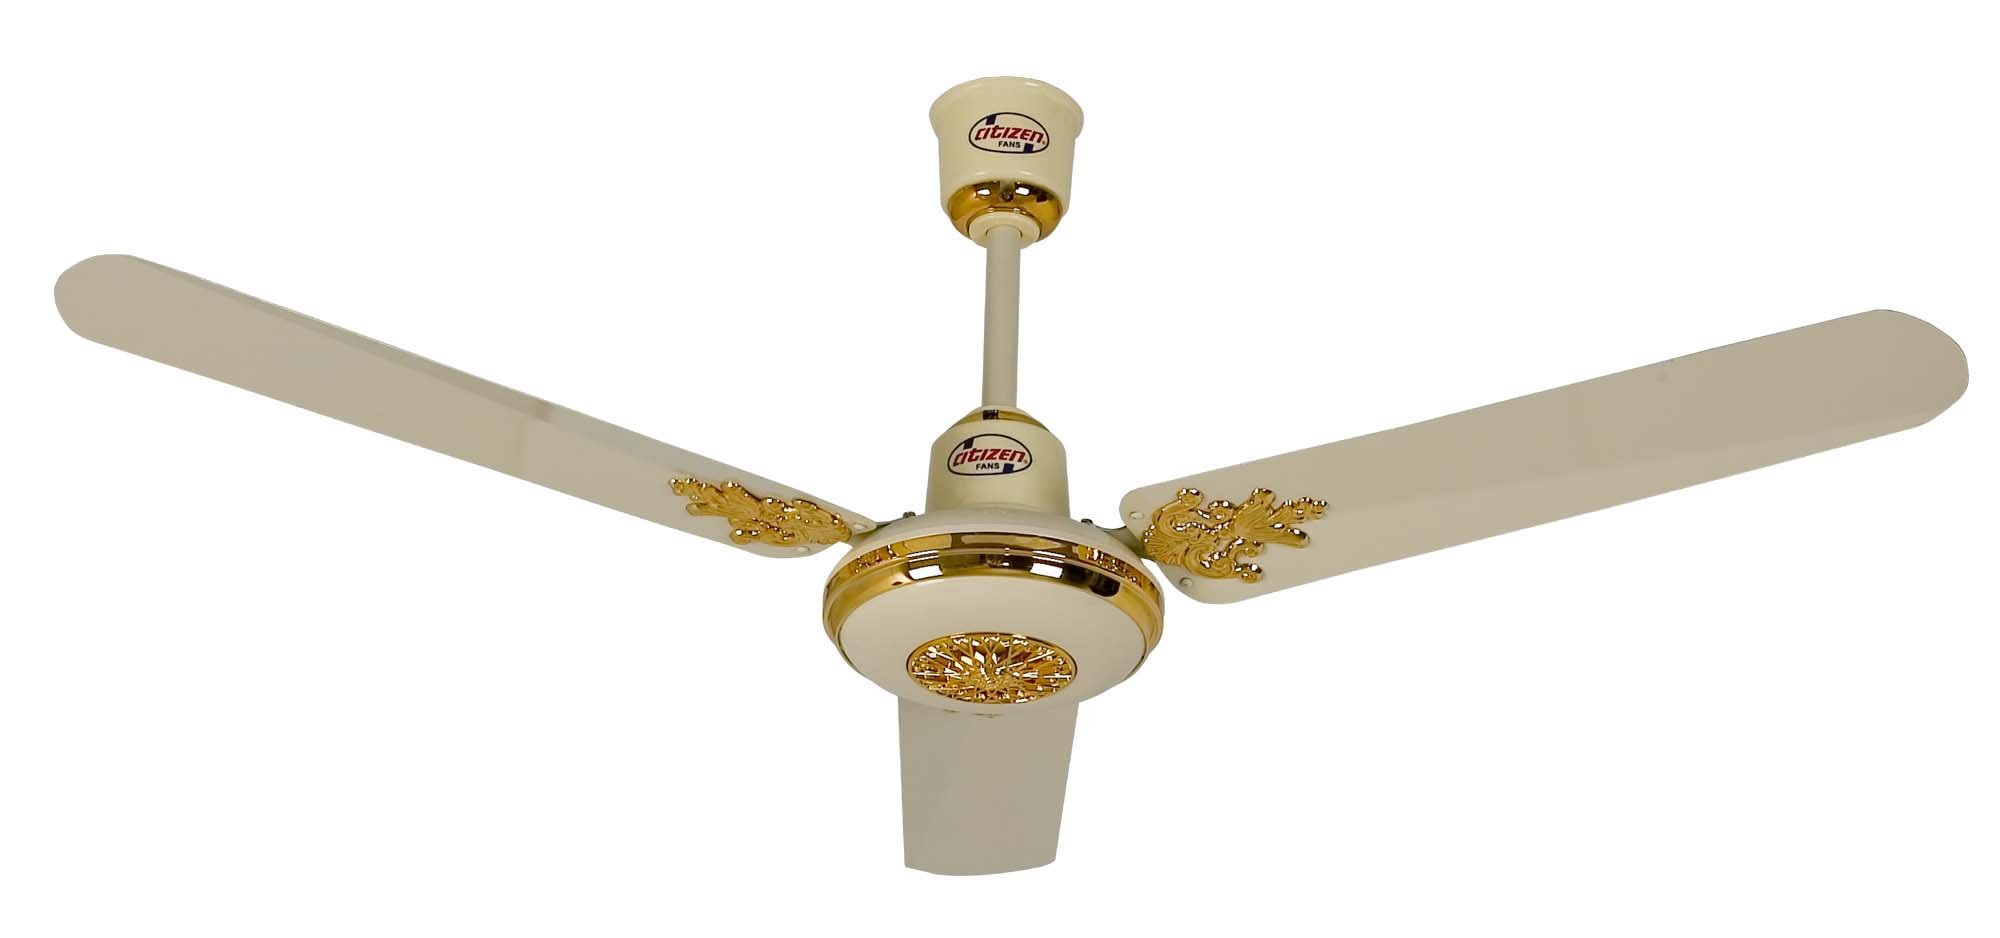 Fancy Ceiling Fan